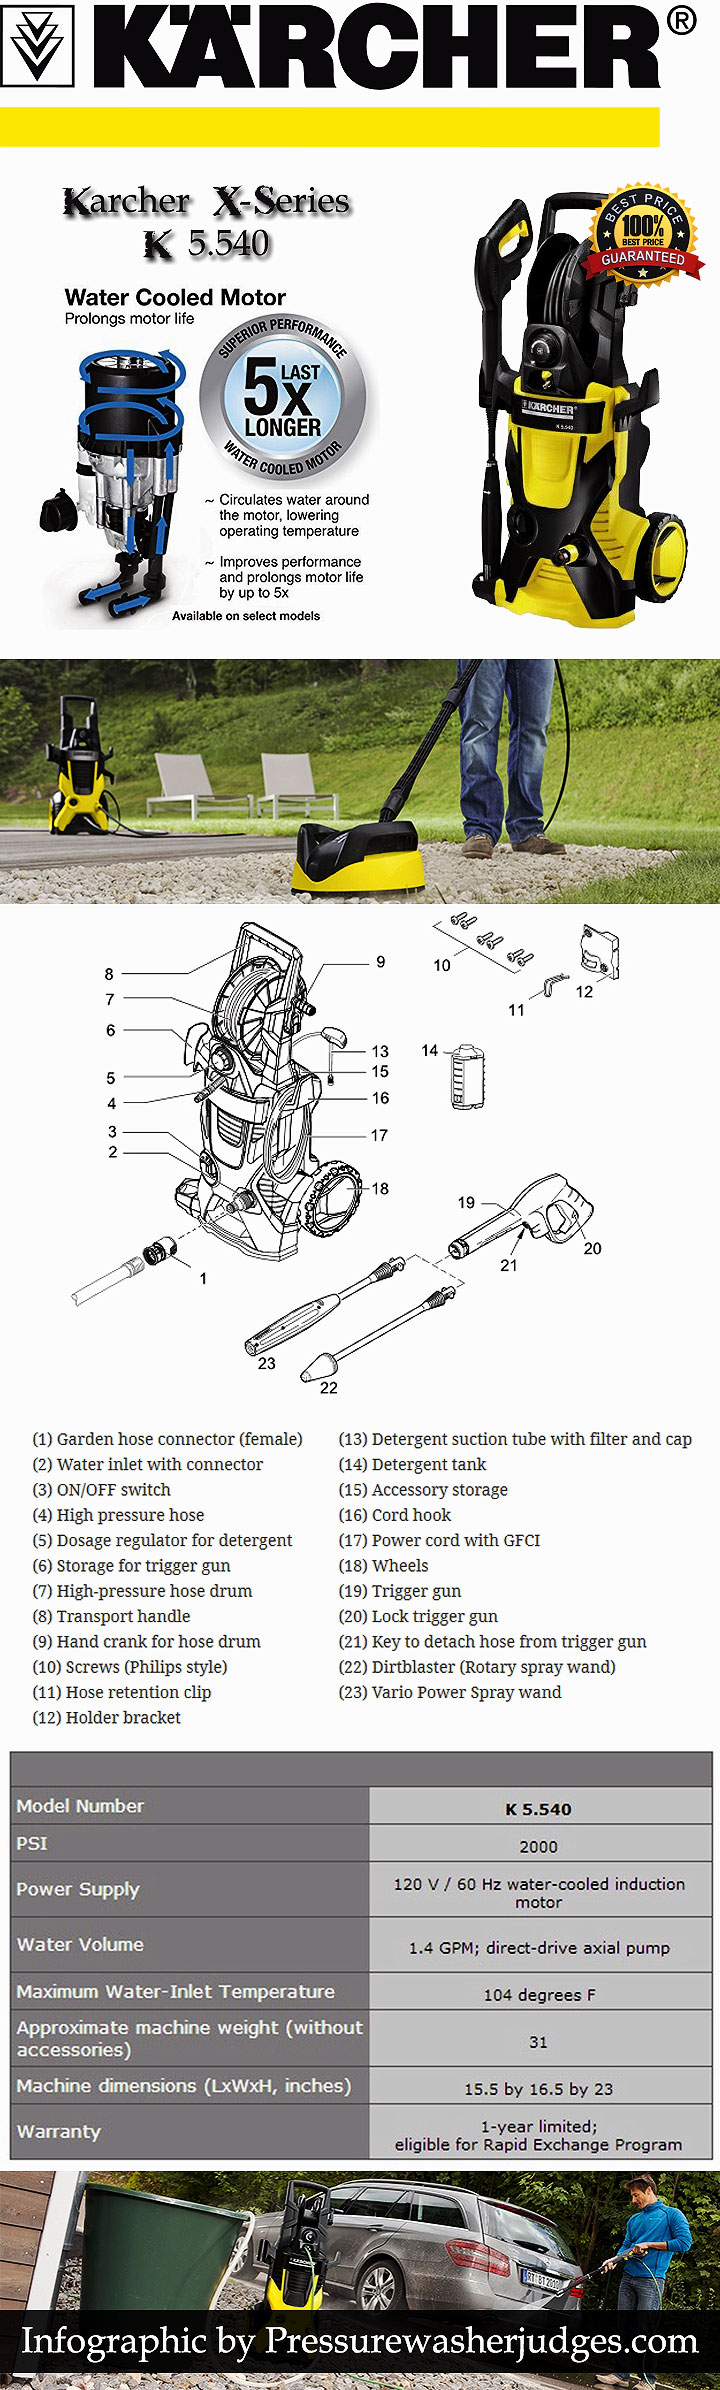 Infographic Karcher X-Series K 5.540